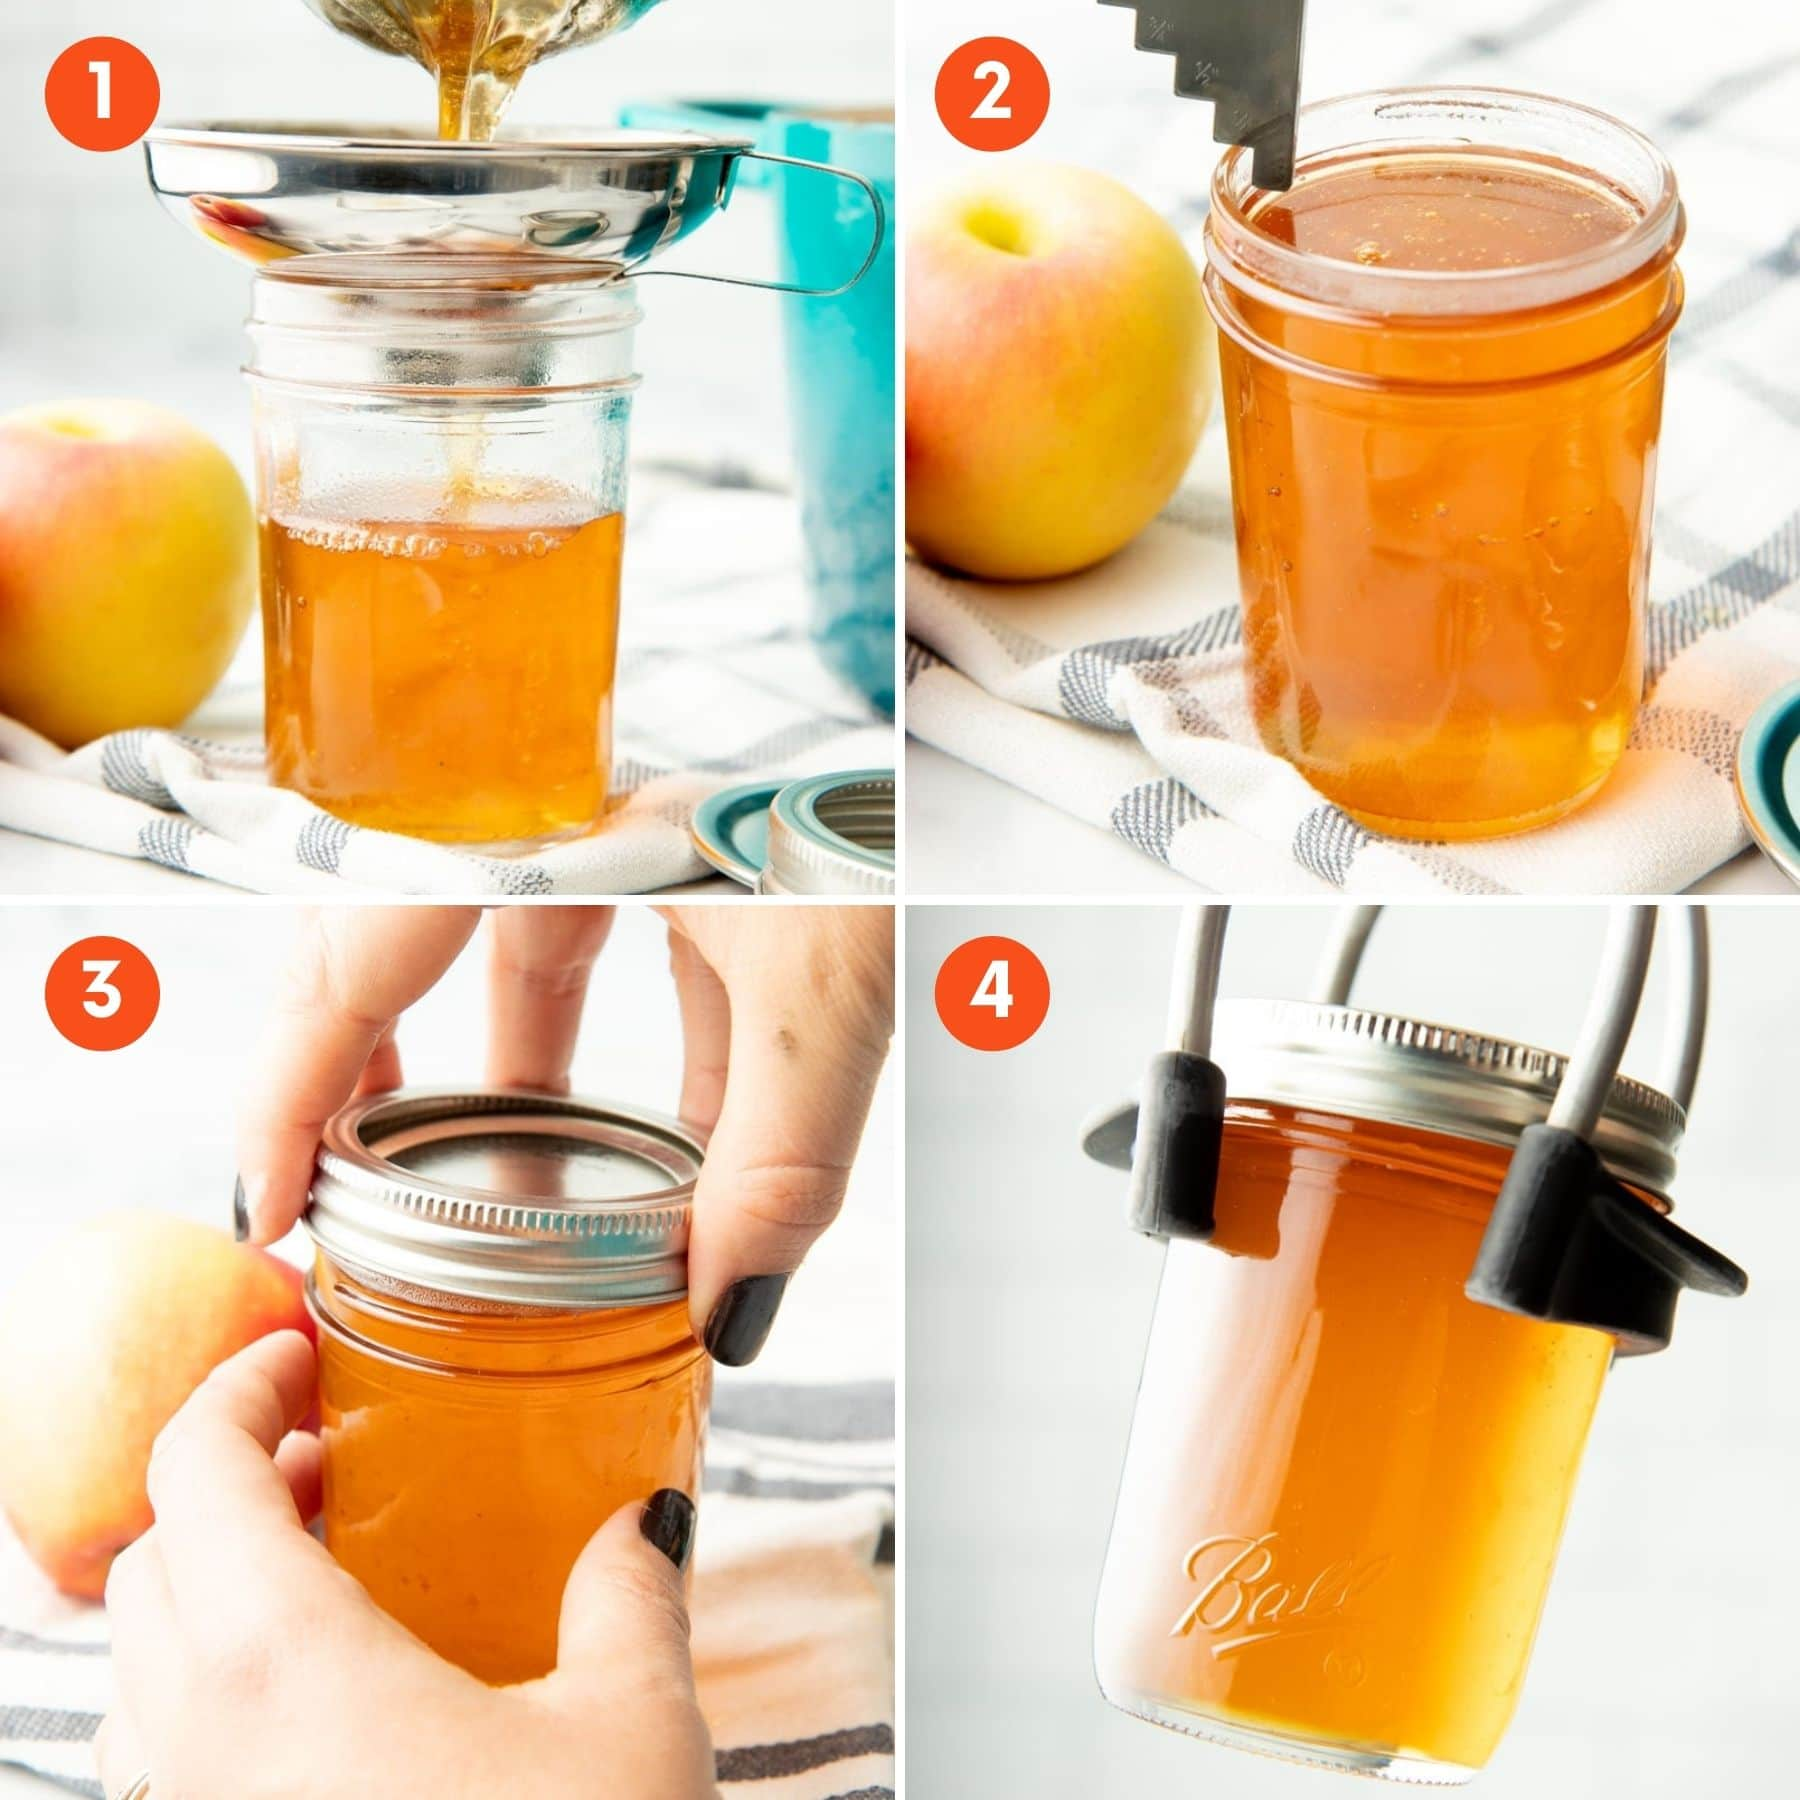 A collage showing four steps to canning.